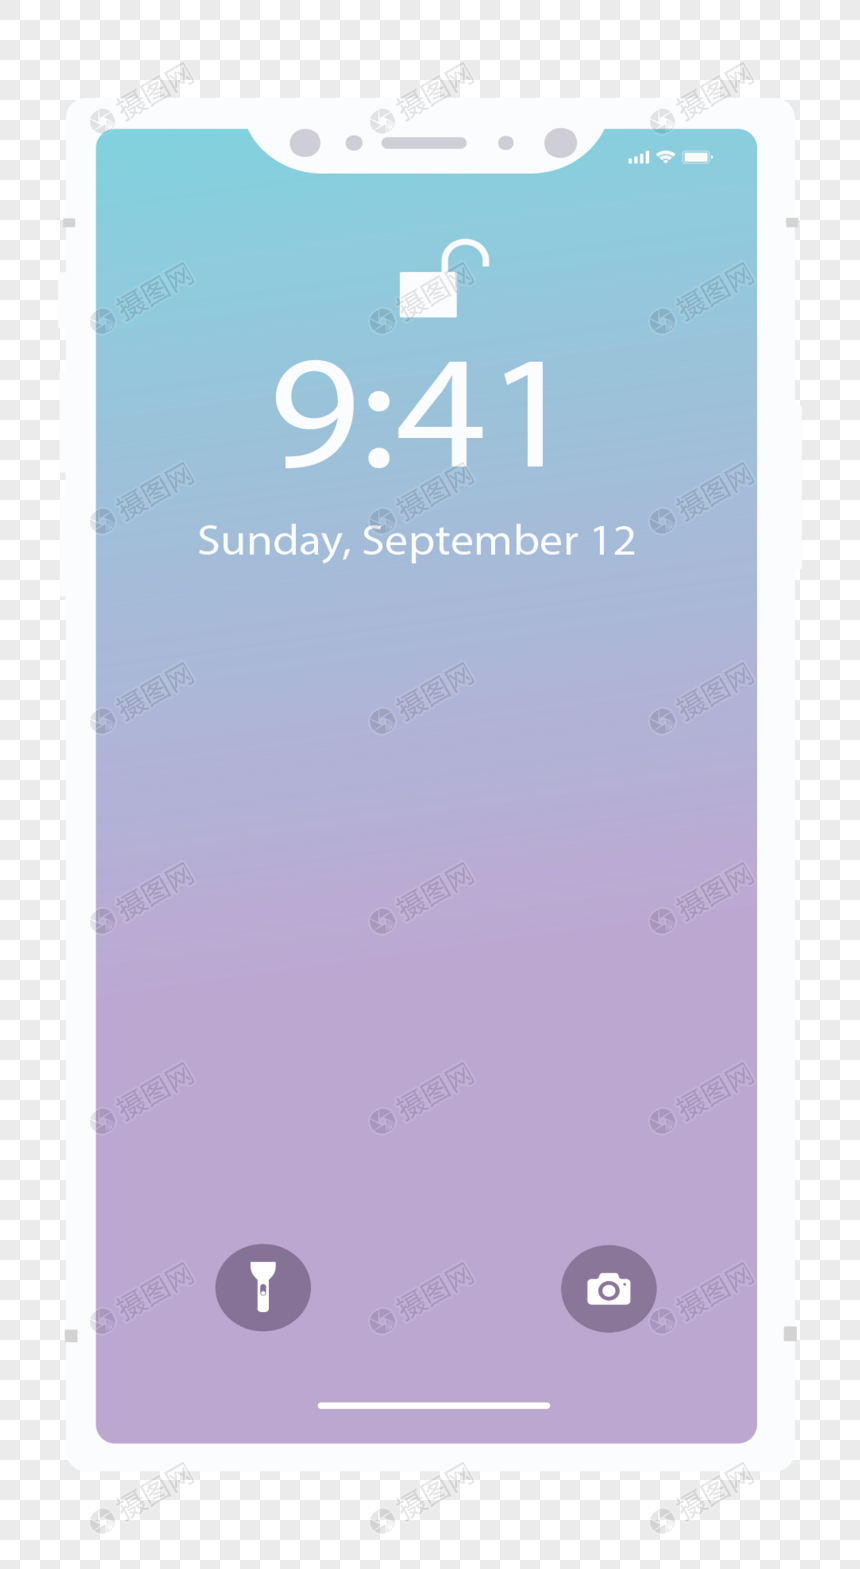 Apple mobile phone with white frame png image_picture free